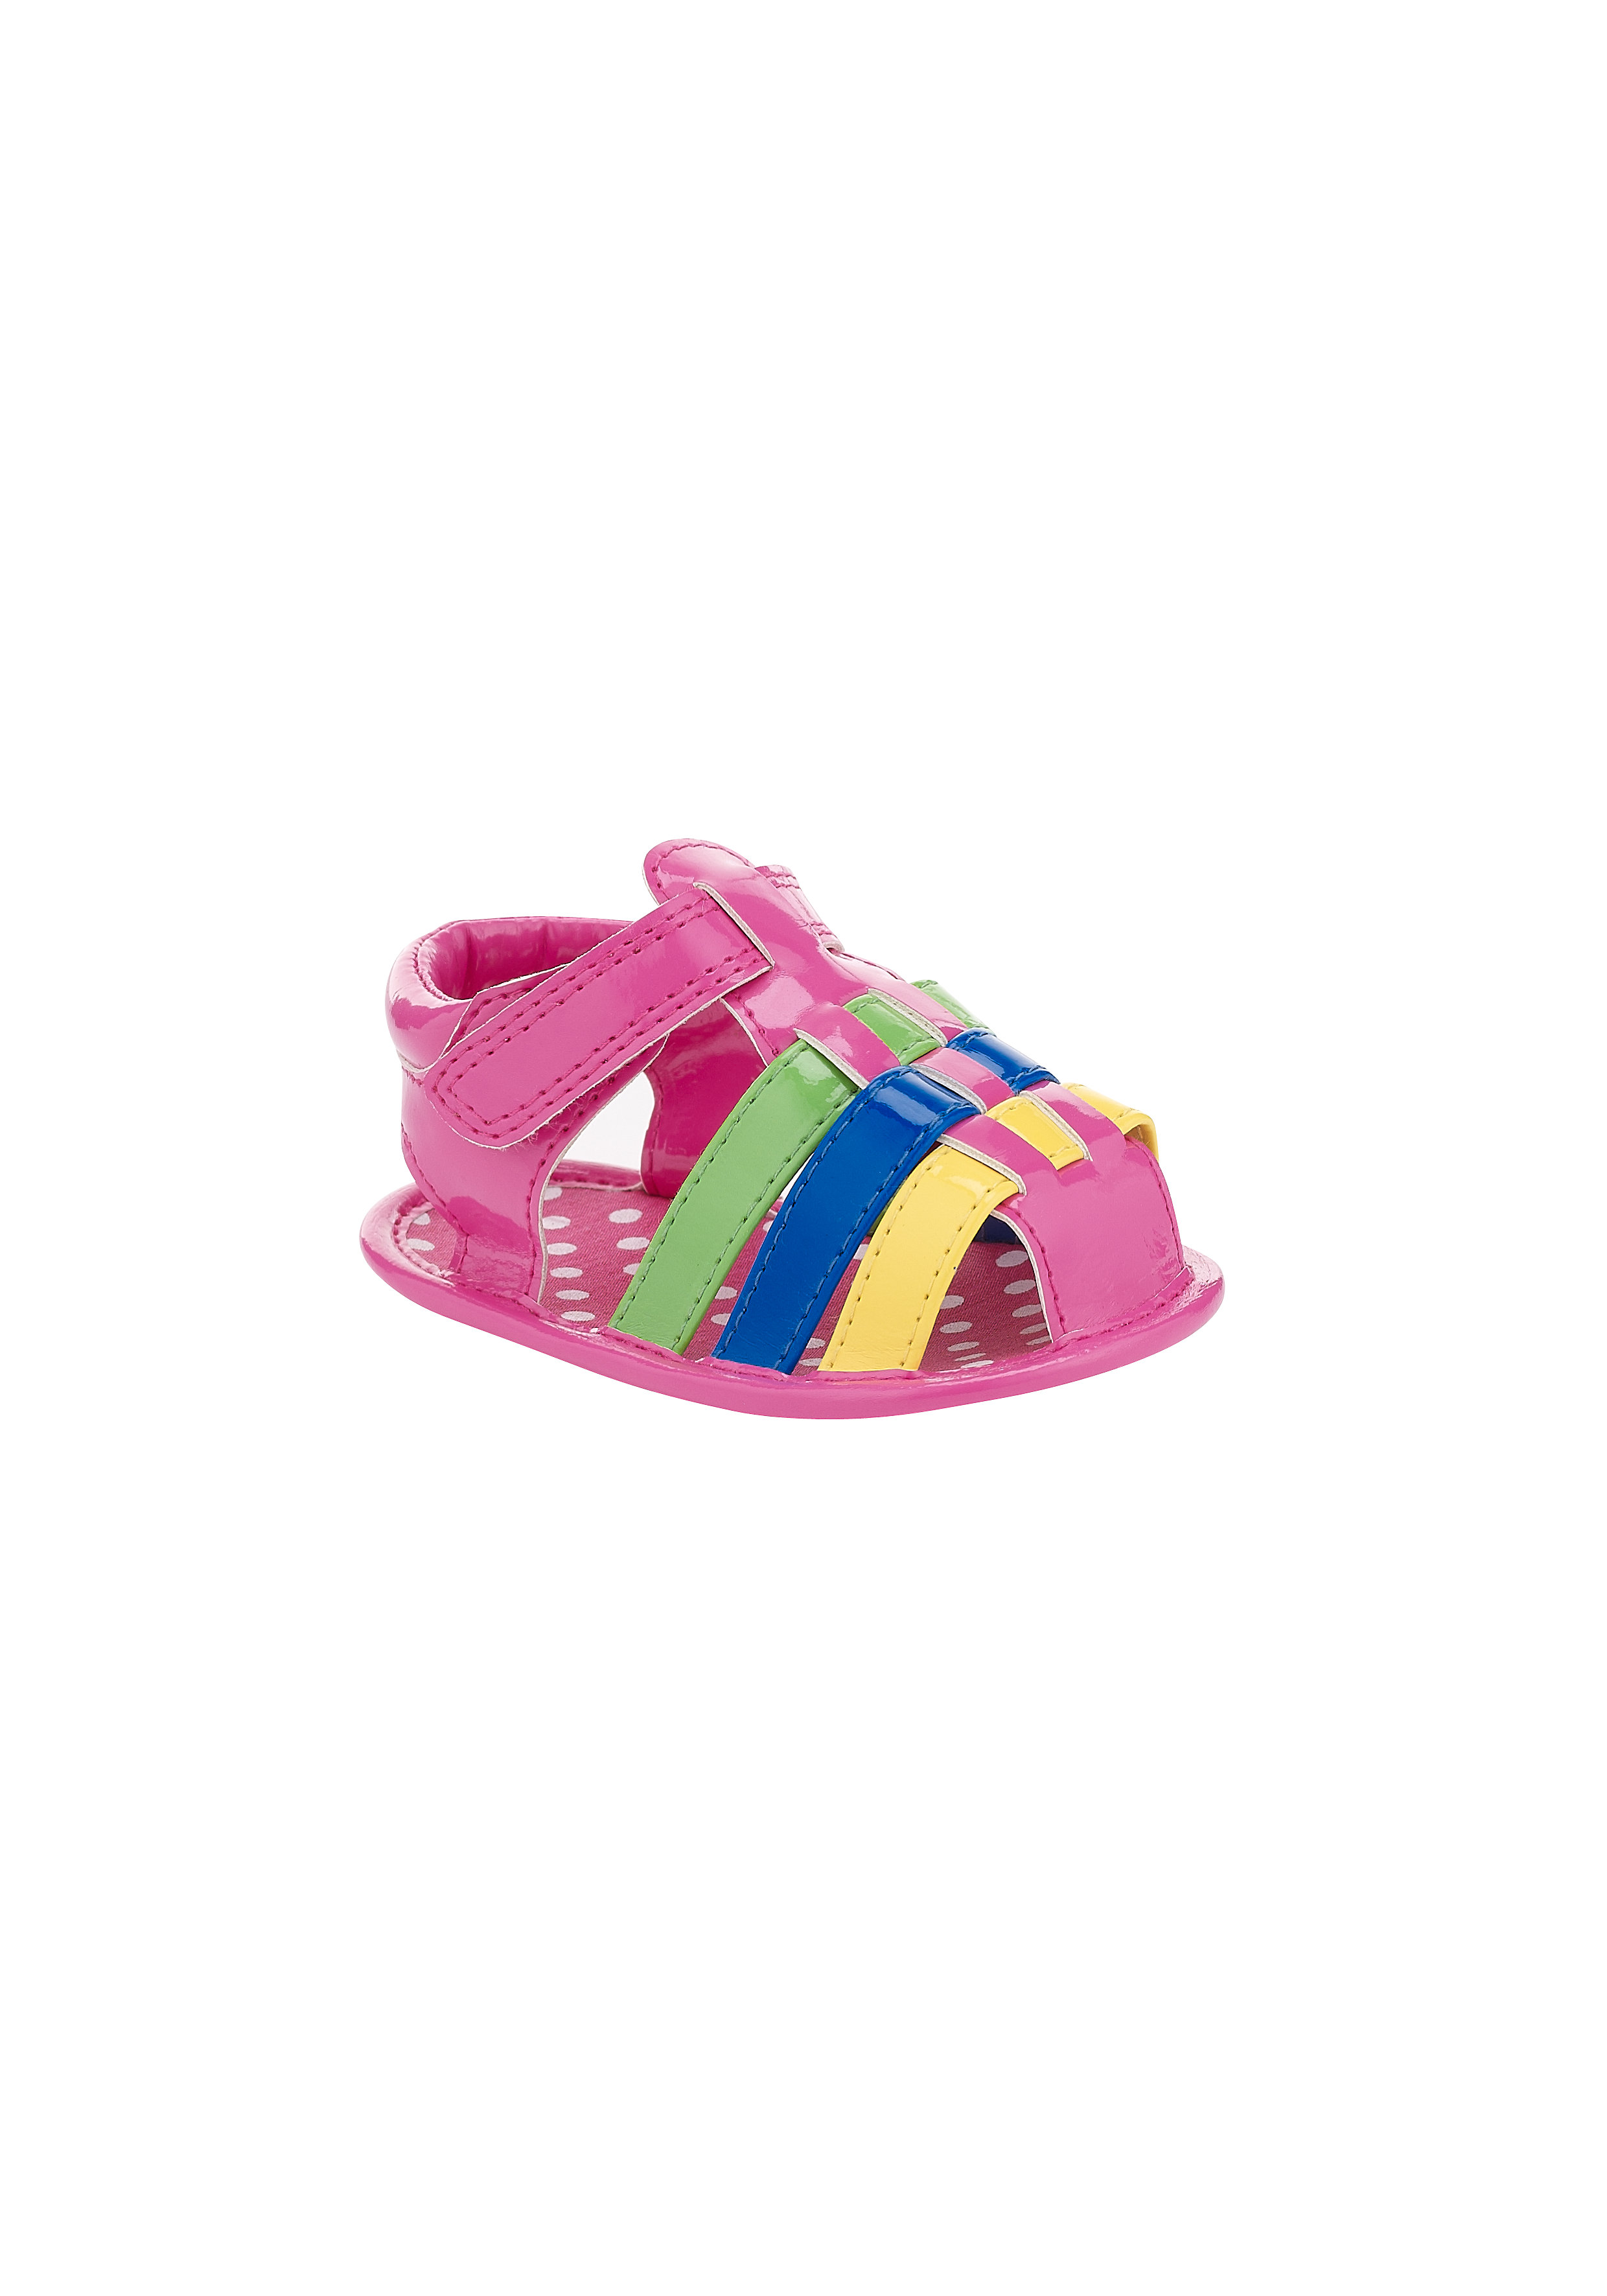 Mothercare | Girls Sandals - Pink